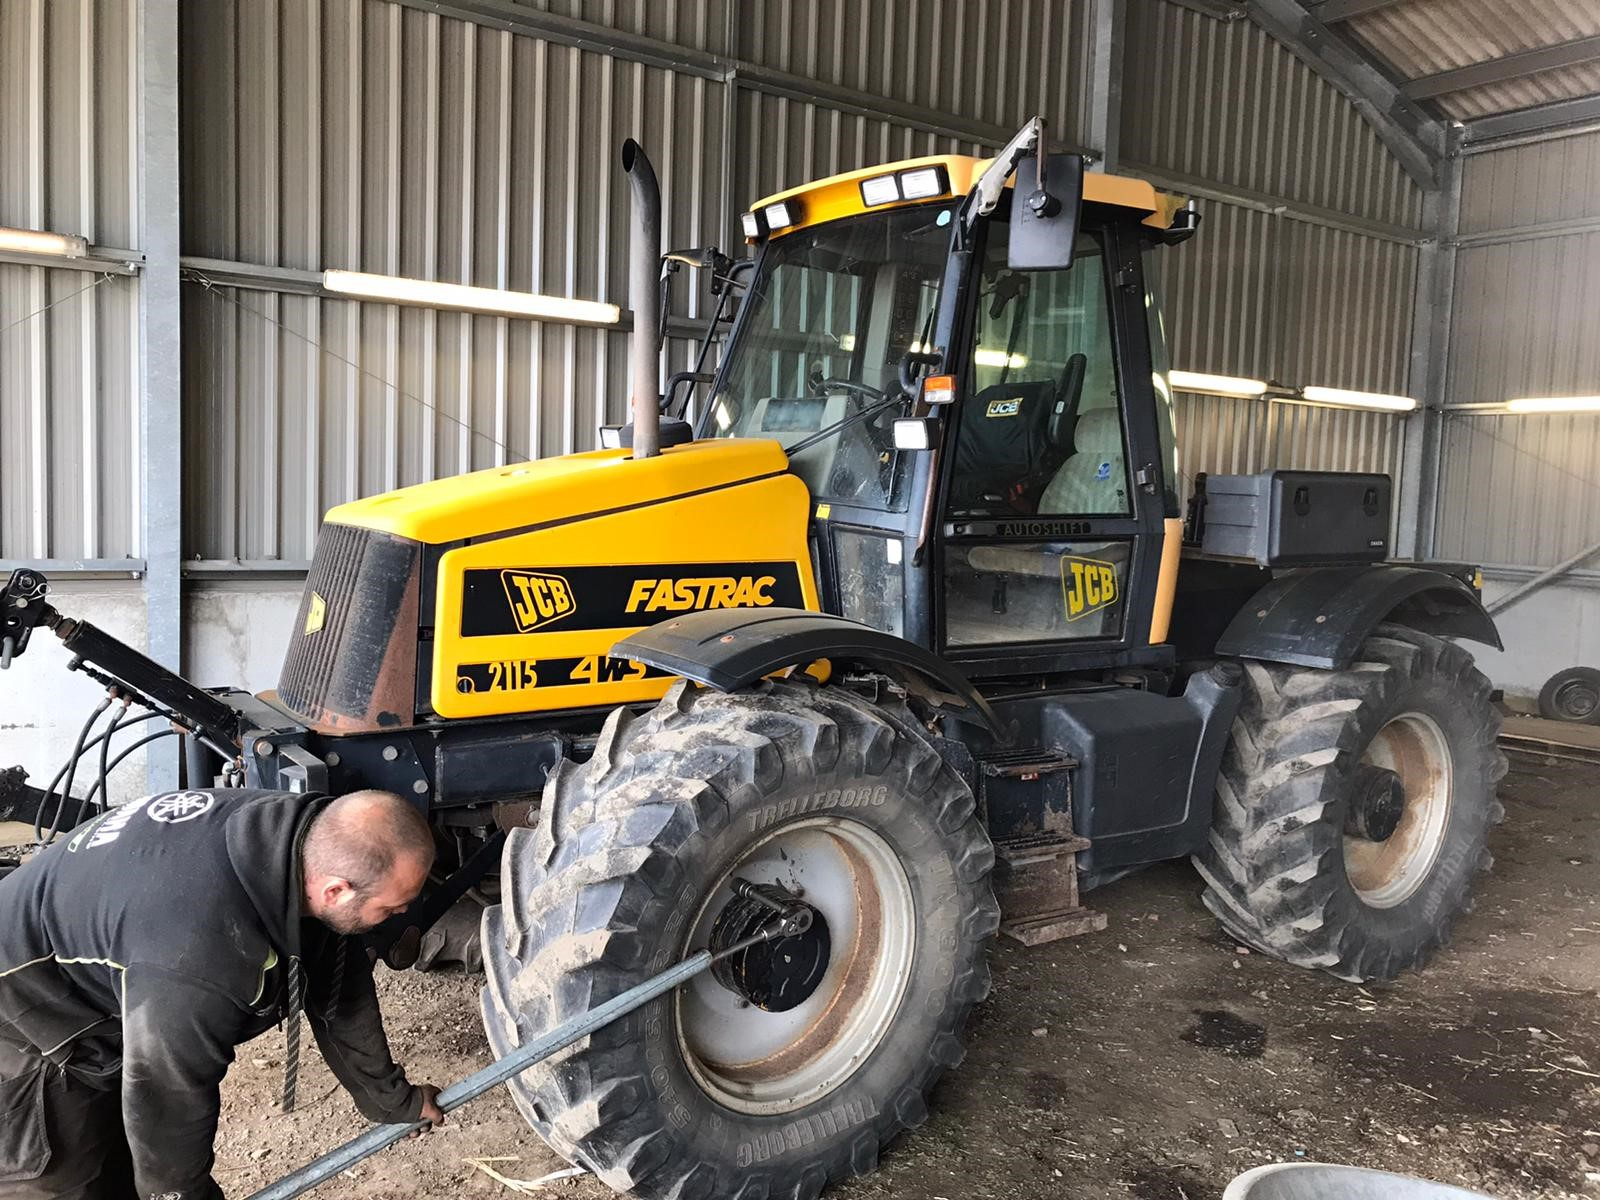 Cheshire Trailers | Trailer Hire, Repair & Sales, Cheshire and North West | JCB Fastrac